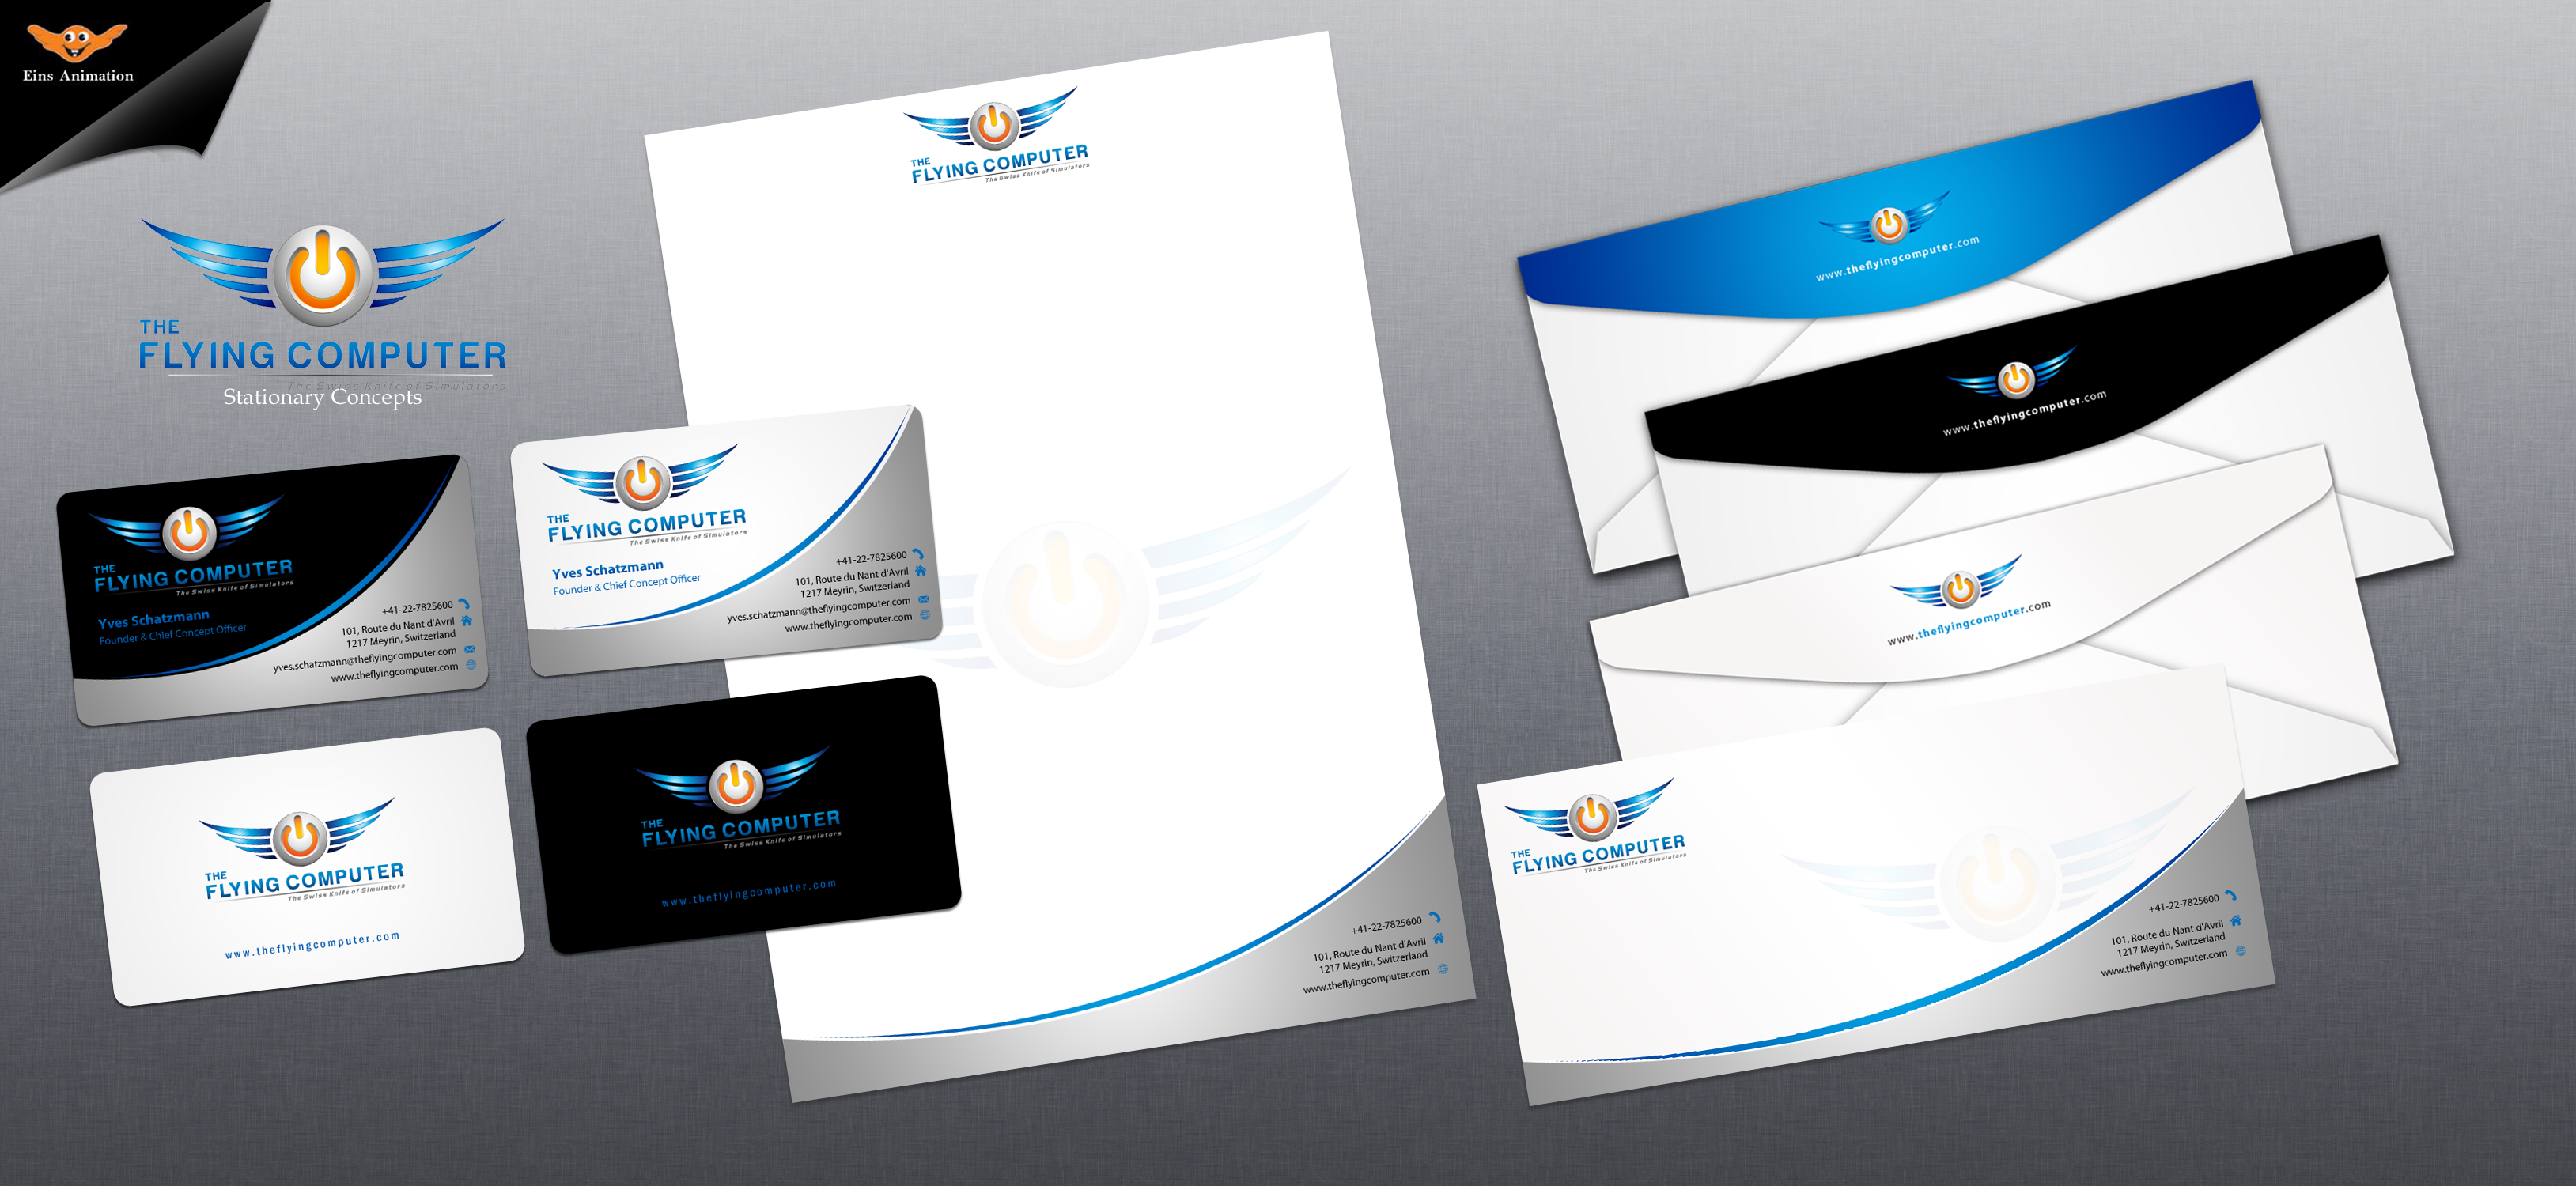 Business Card for a Flying Simulator Company - Computers